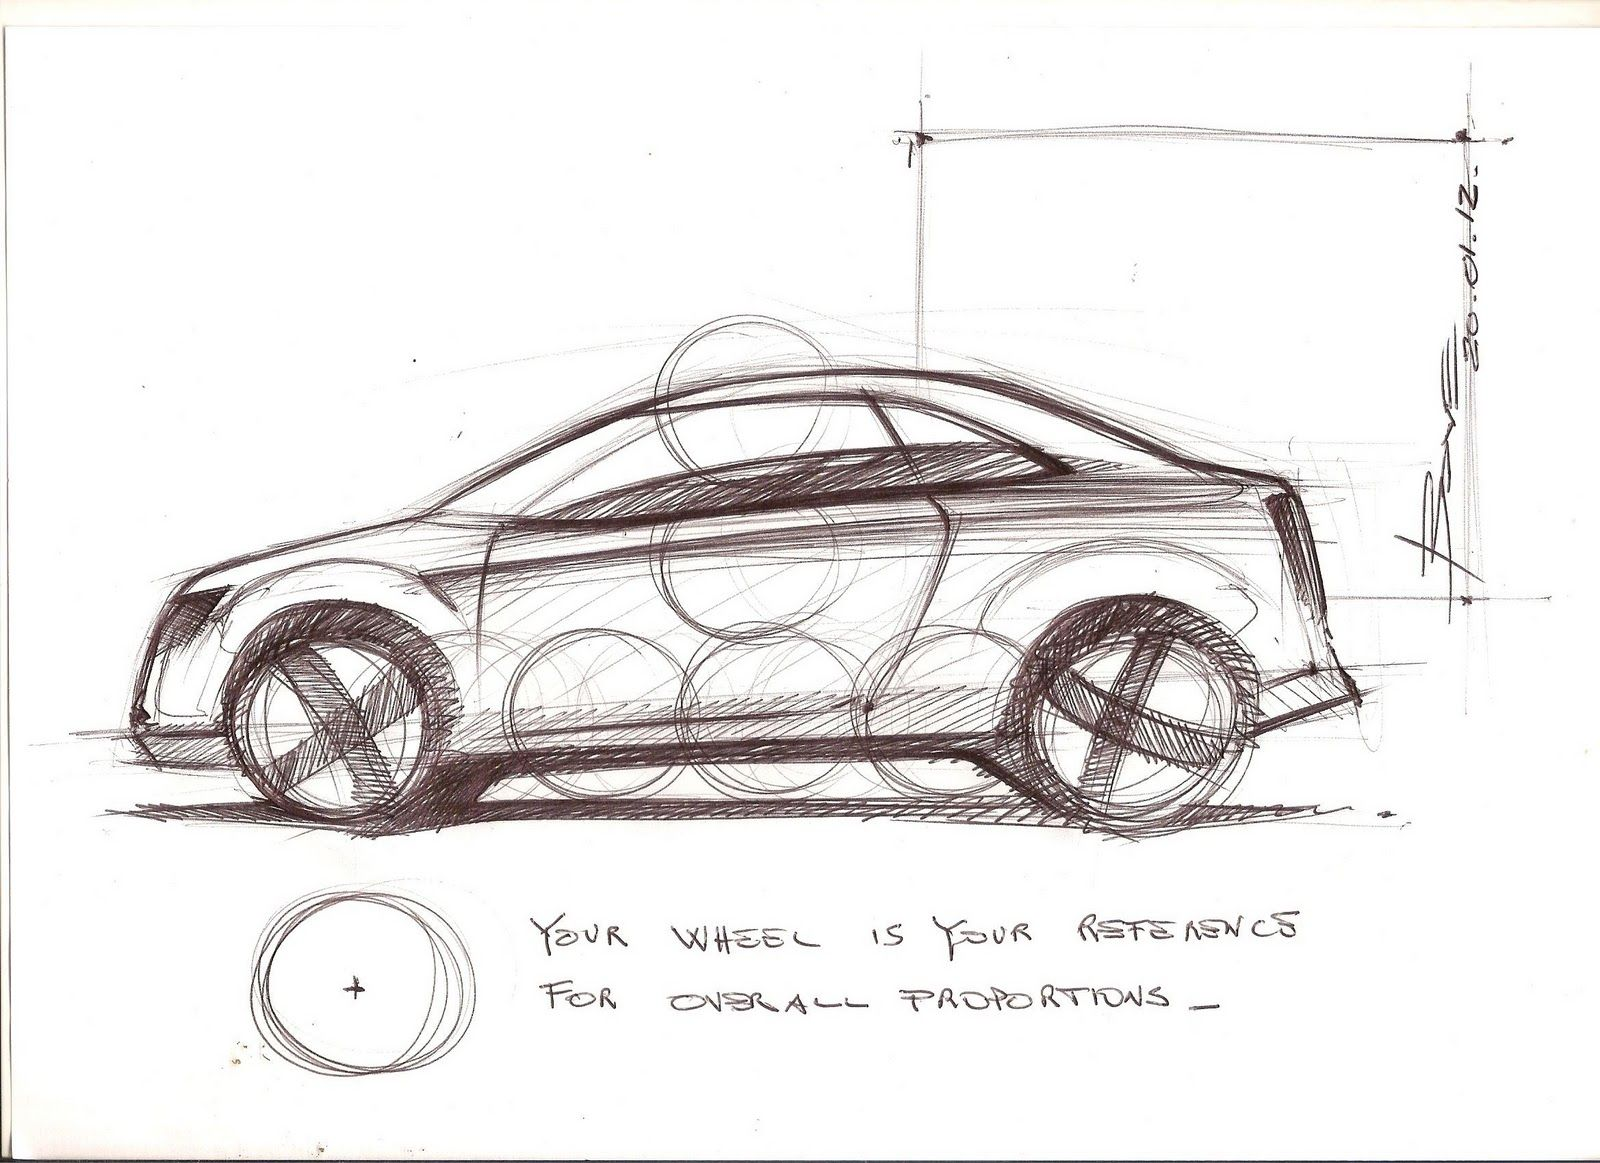 How To Draw A Car Sketch In Side View Car Design Education Tips Car Sketch Car Design Sketch Sketches